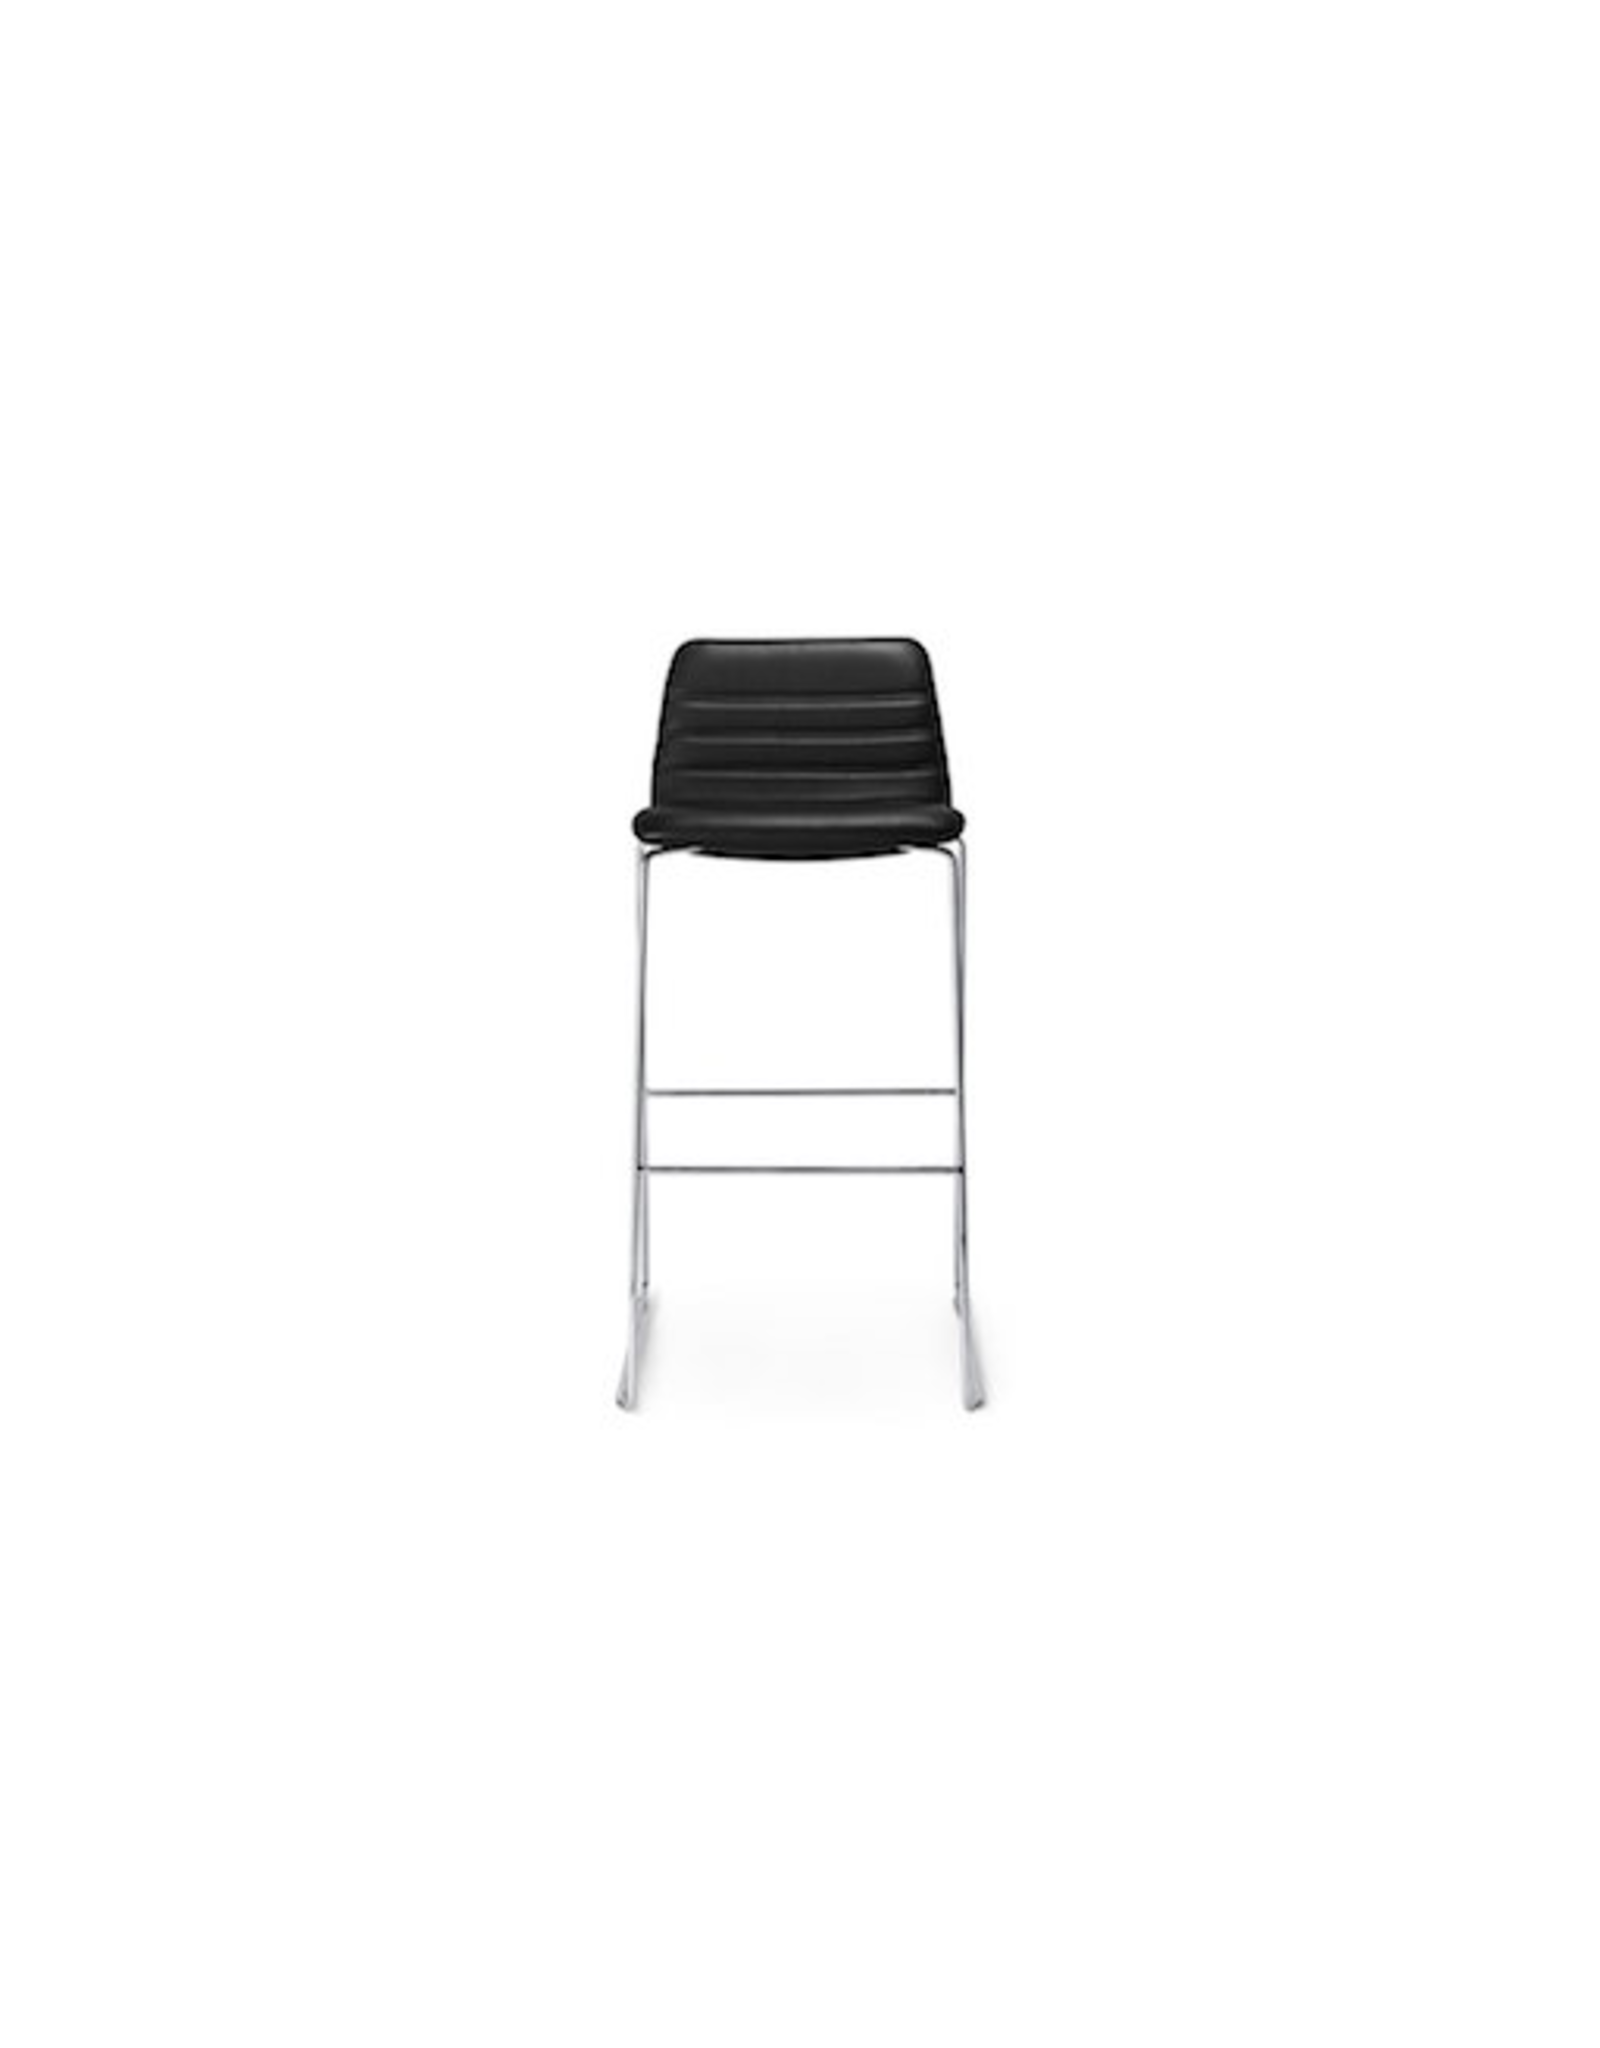 SPINAL 44 BARSTOOL IN STANDARD BLACK LEATHER